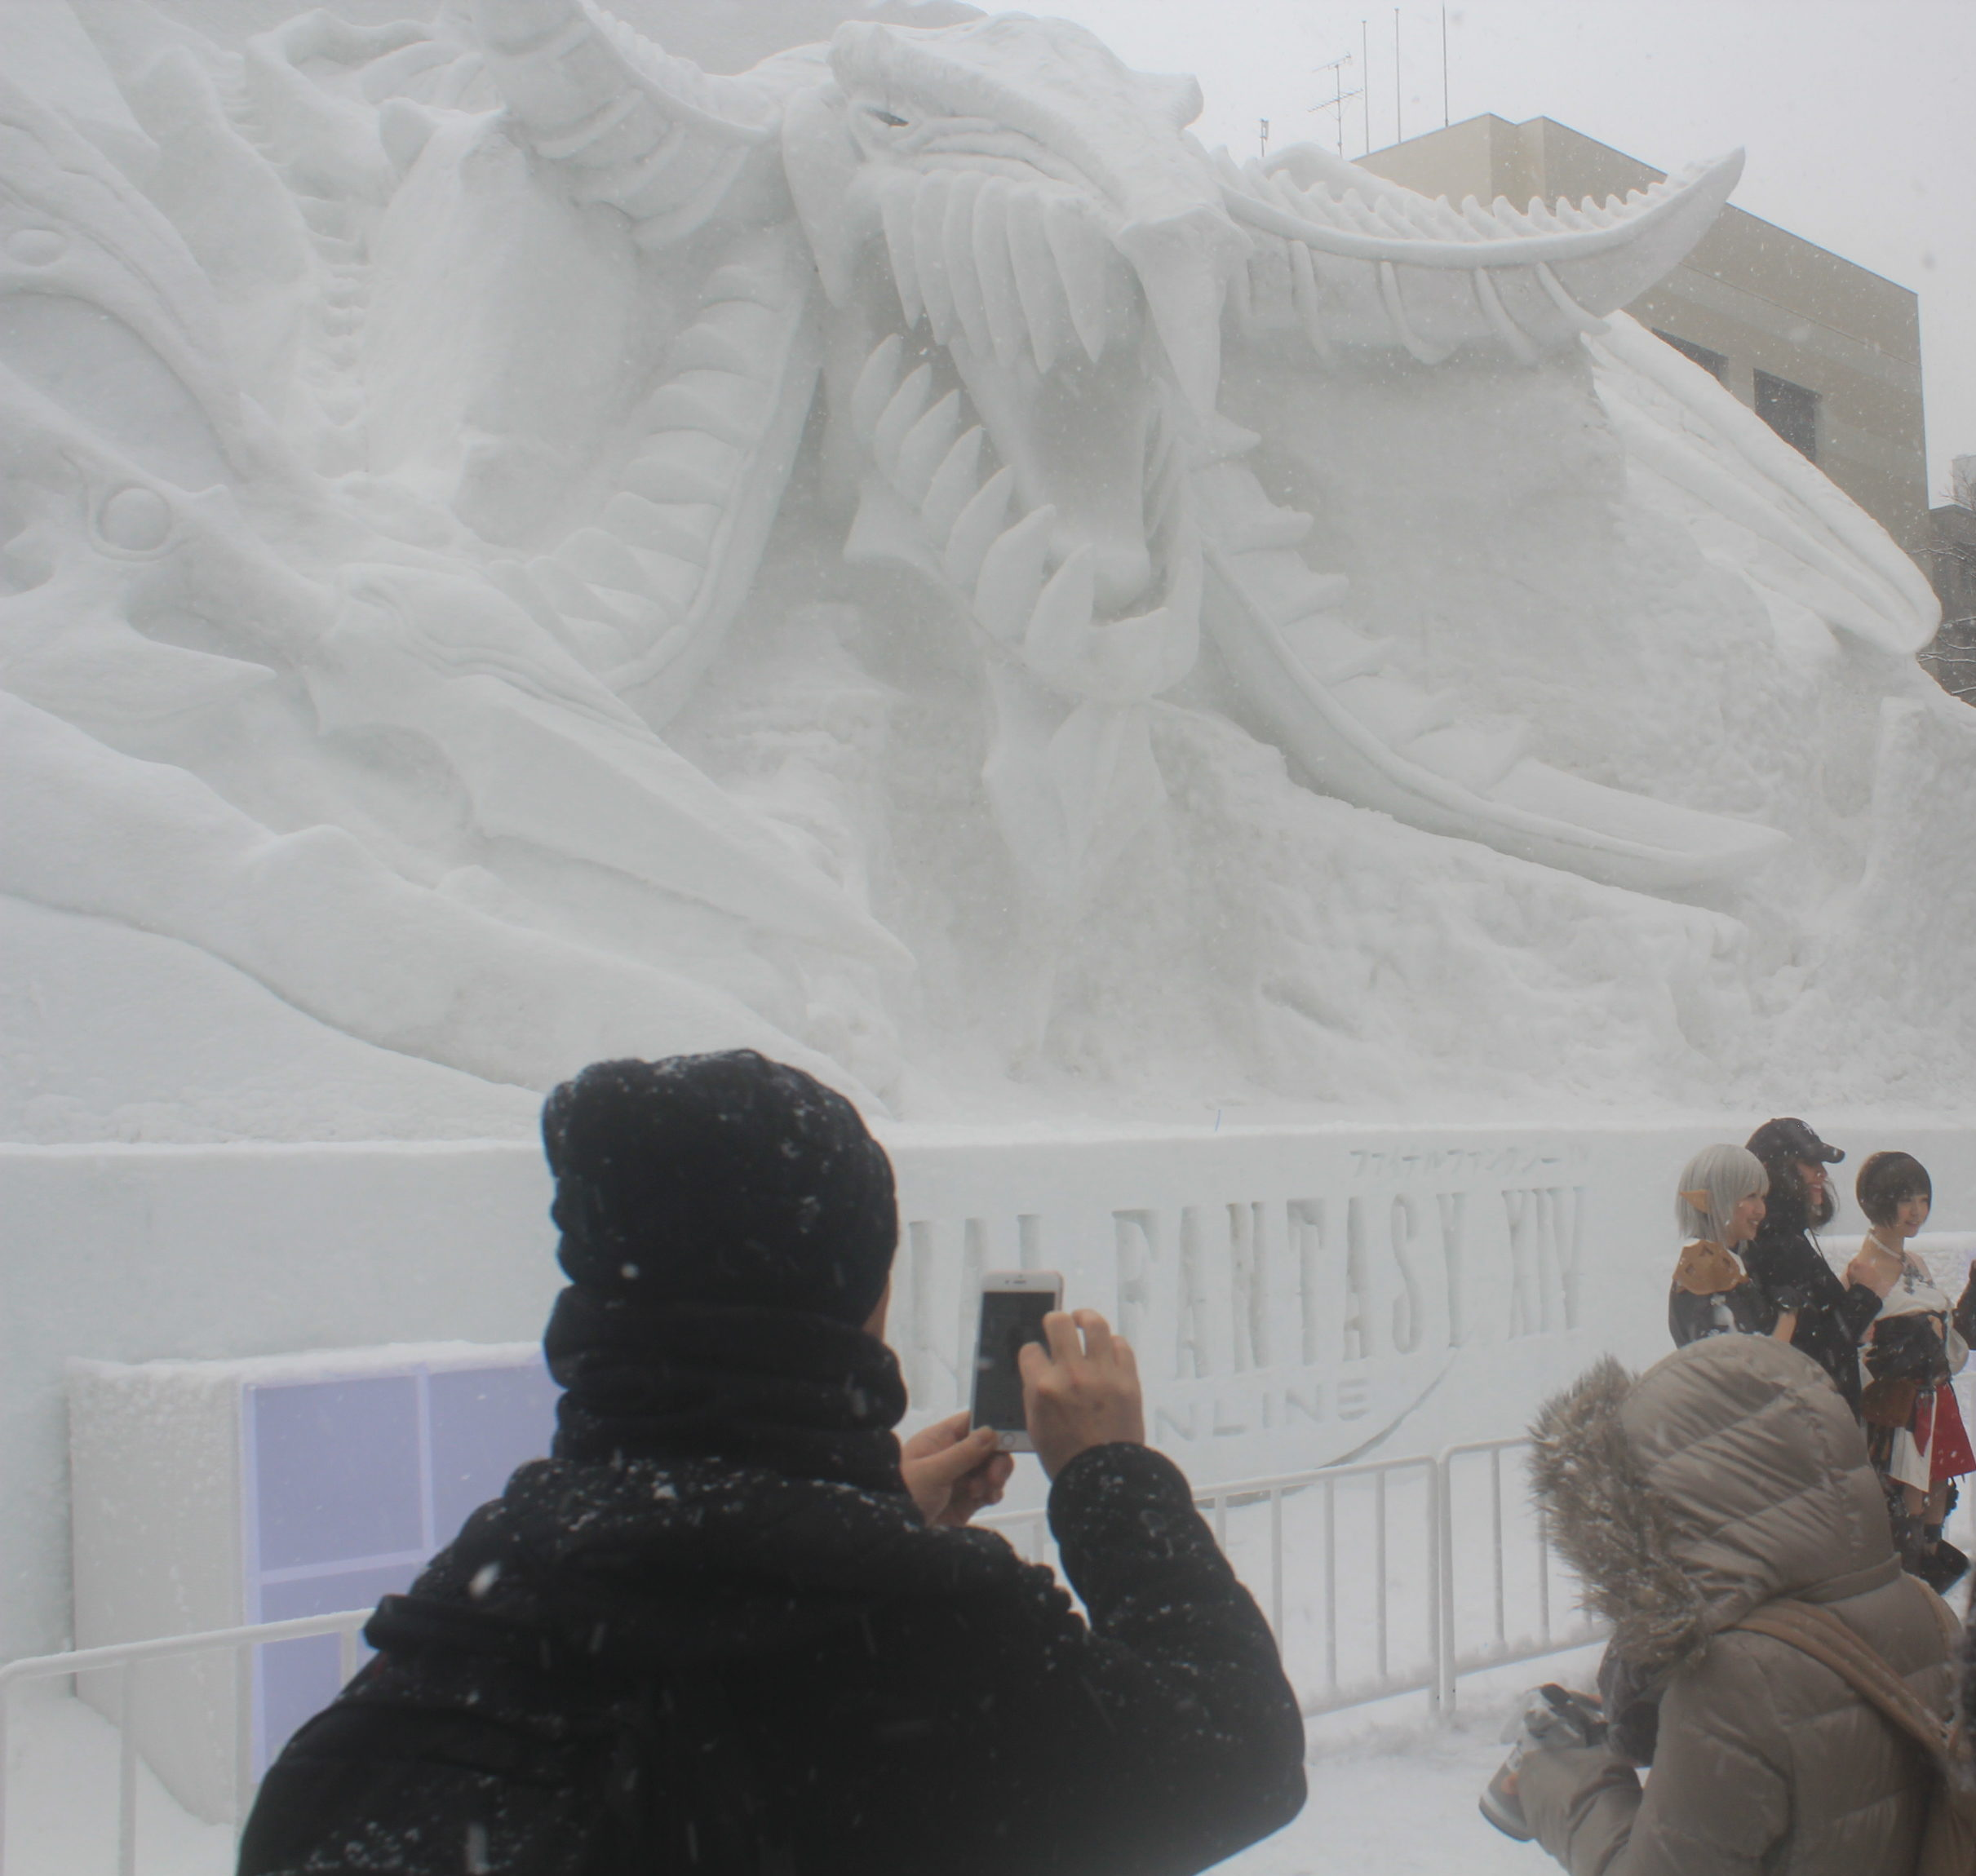 Snow sculptures from Final Fantasy